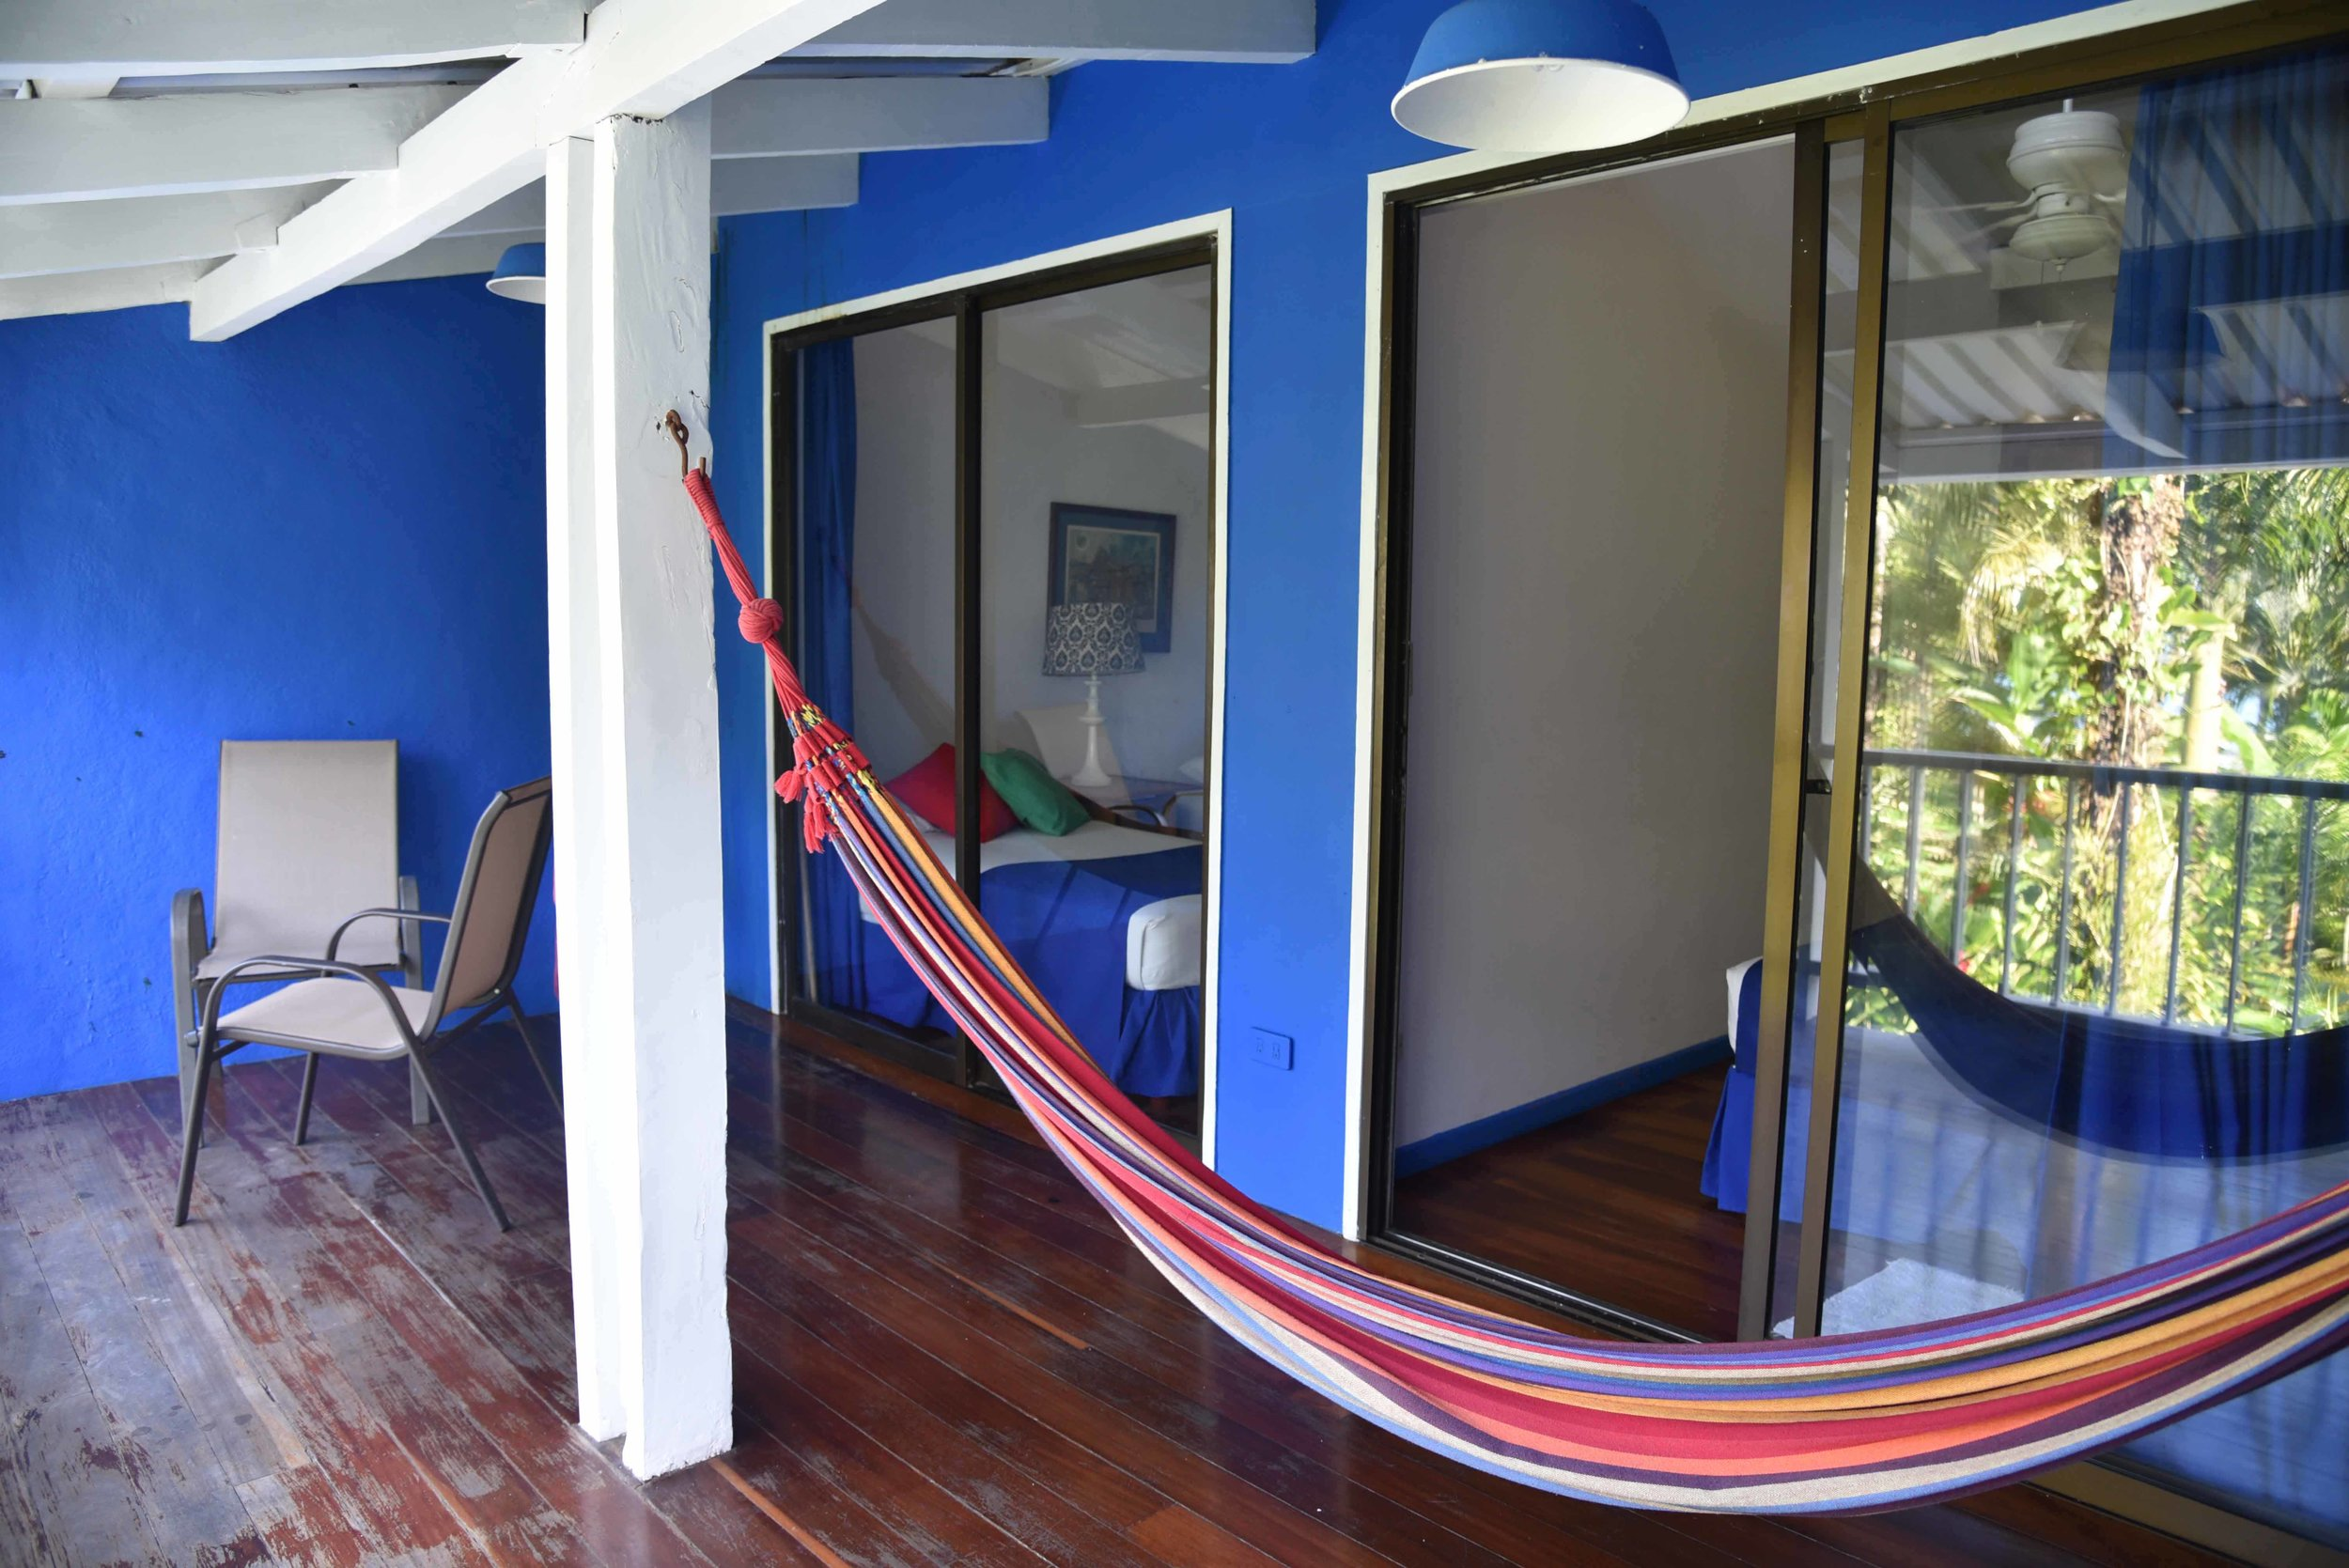 VILLAS DEL CARIBE COCLES PUERTO VIEJO  BREATHWORK YOGA RETREAT  MEG WILLIAMS  LISA D. (C)-14.jpg